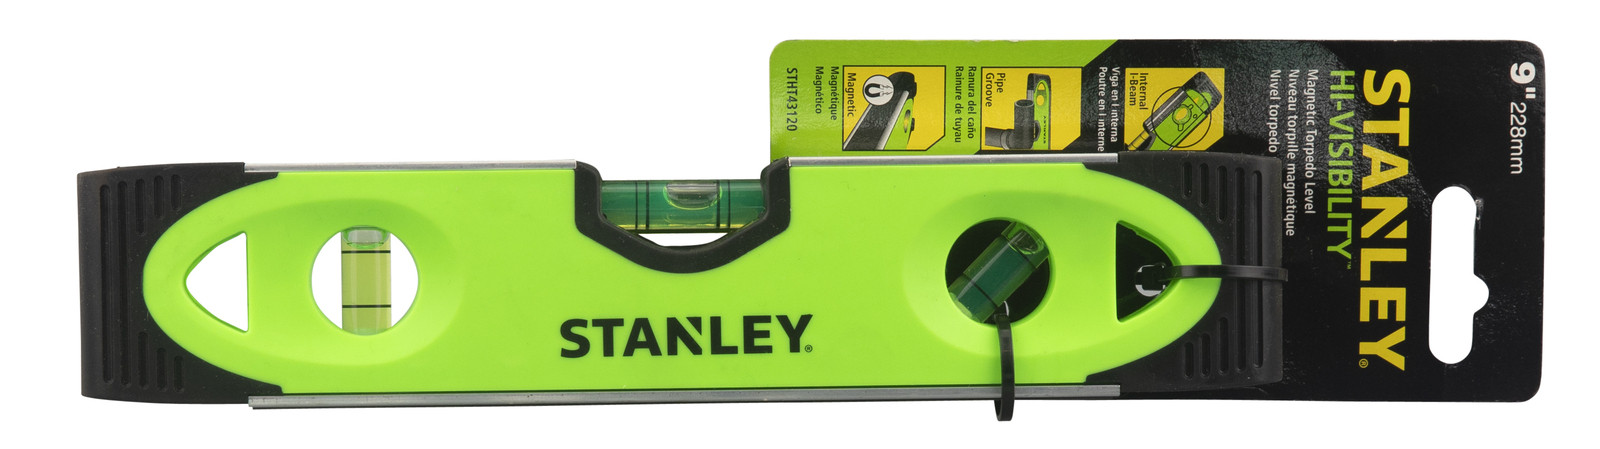 Stanley 300mm Level - Fluro